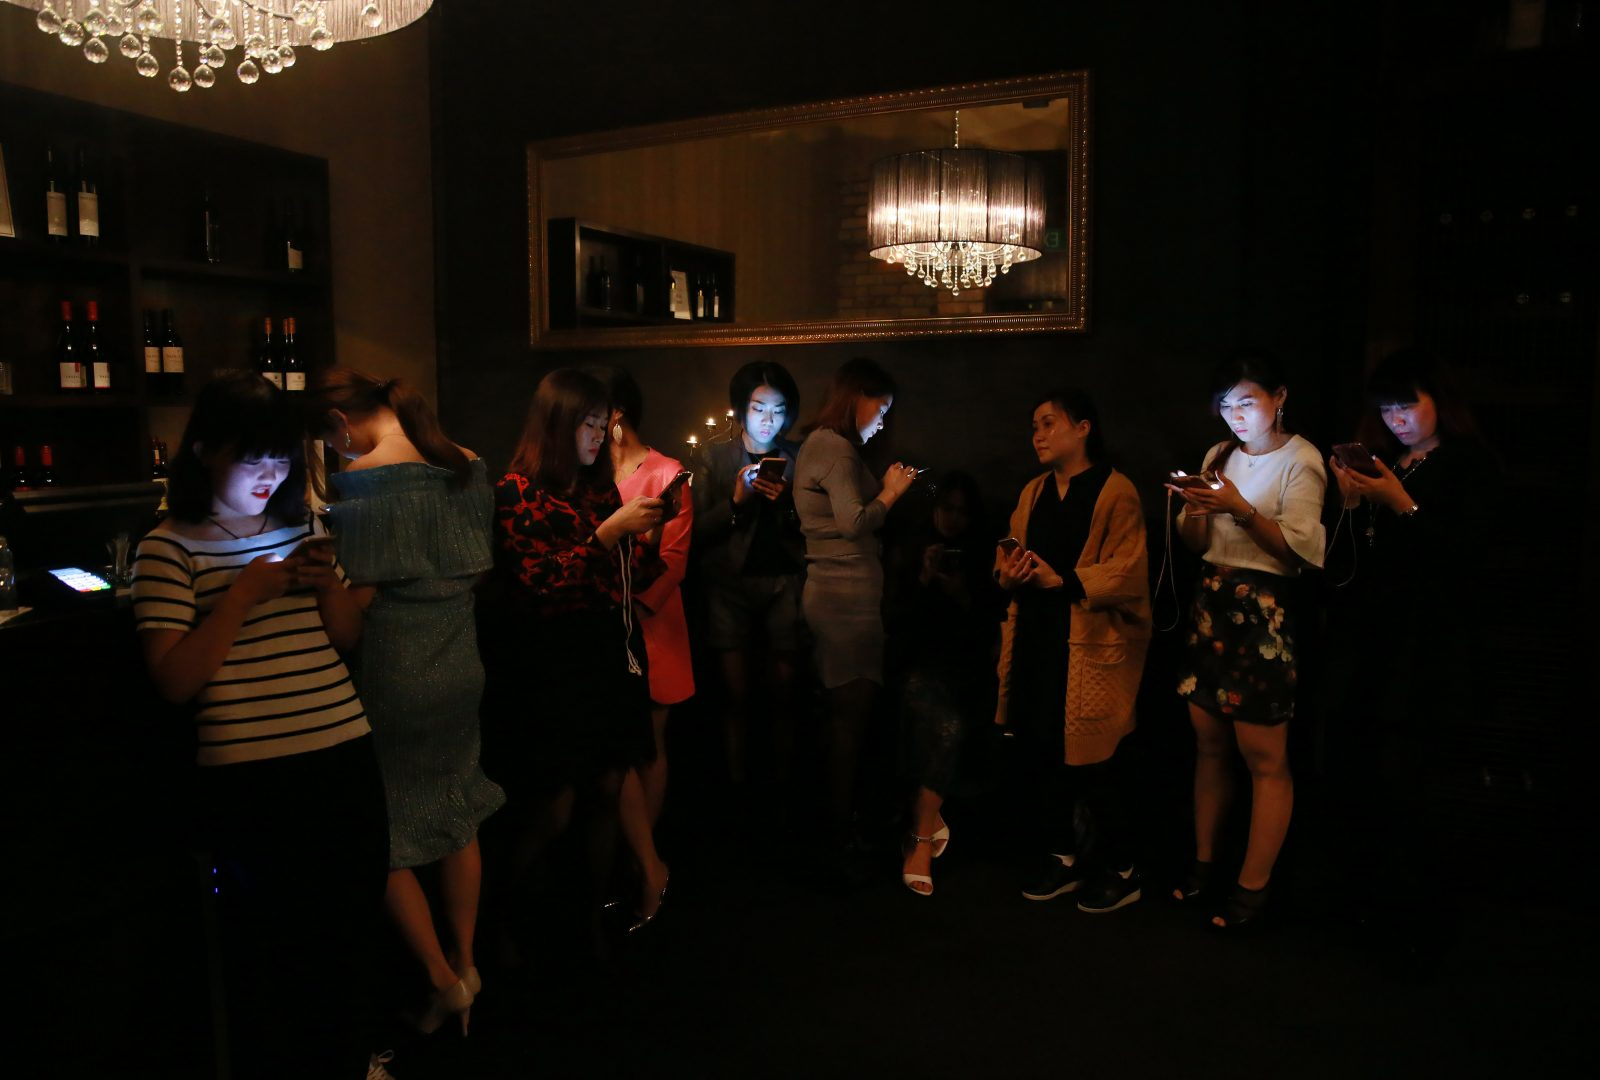 At an event in promotion of a line of skincare, Waikato Times photojournalist Mark Taylor noticed that many of the 30 guests were on their phones as they waited to be seated. Adjusting his exposure, he captured the light of each woman's smartphone screen illuminating her face.